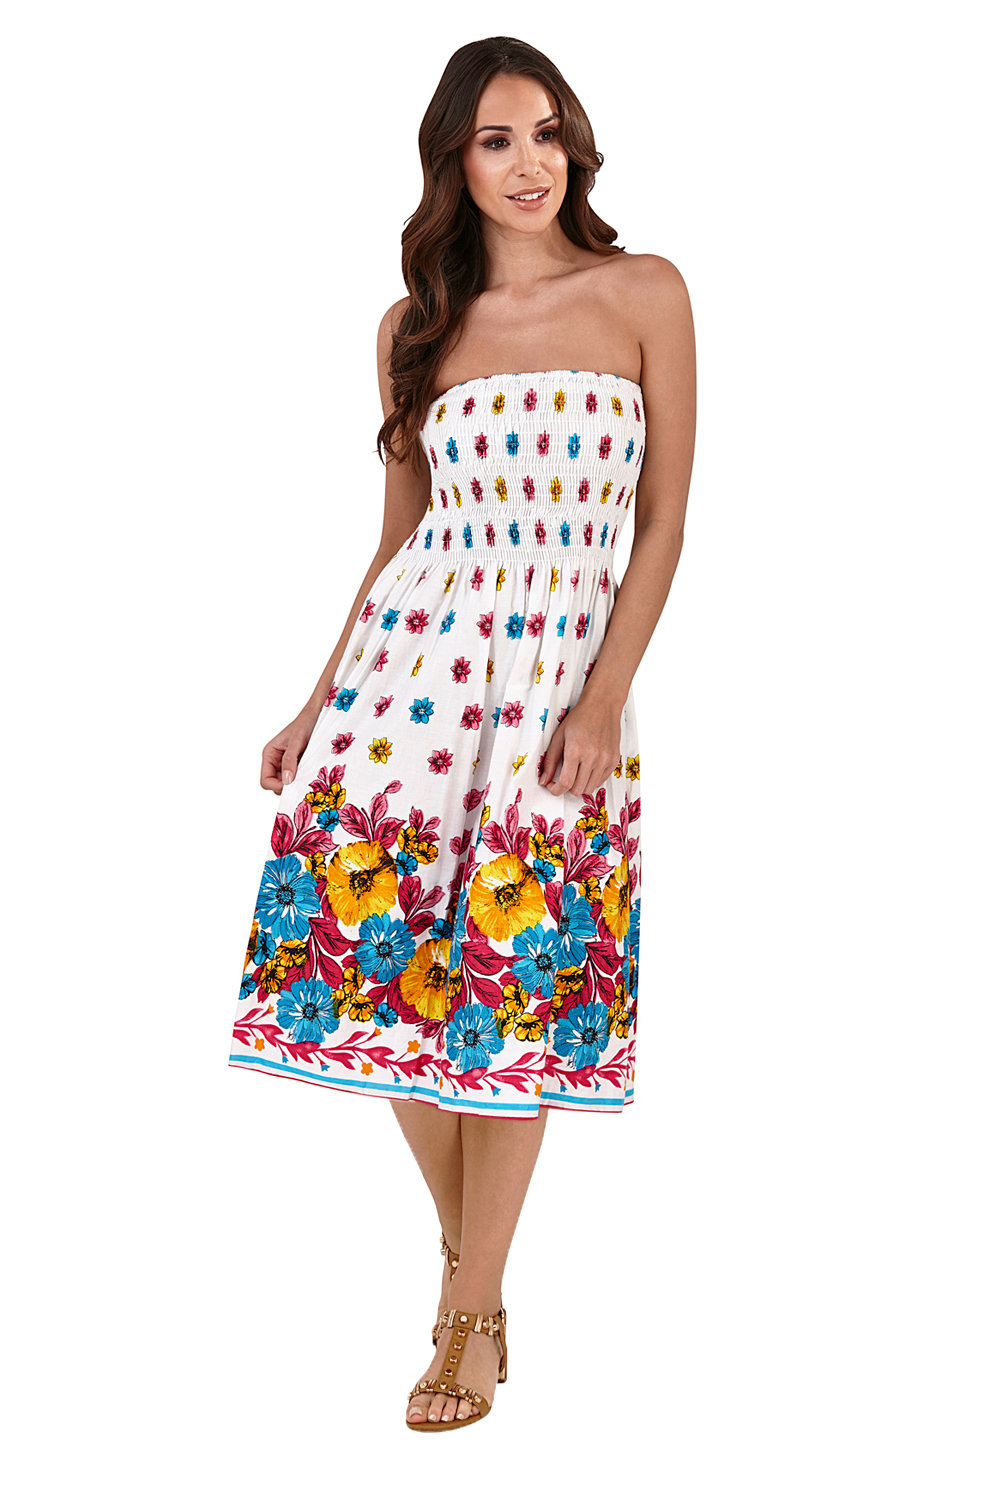 Pistachio-Womens-Patterned-3-In-1-Dresses-Ladies-New-Cotton-Summer-Beach-Skirts thumbnail 3